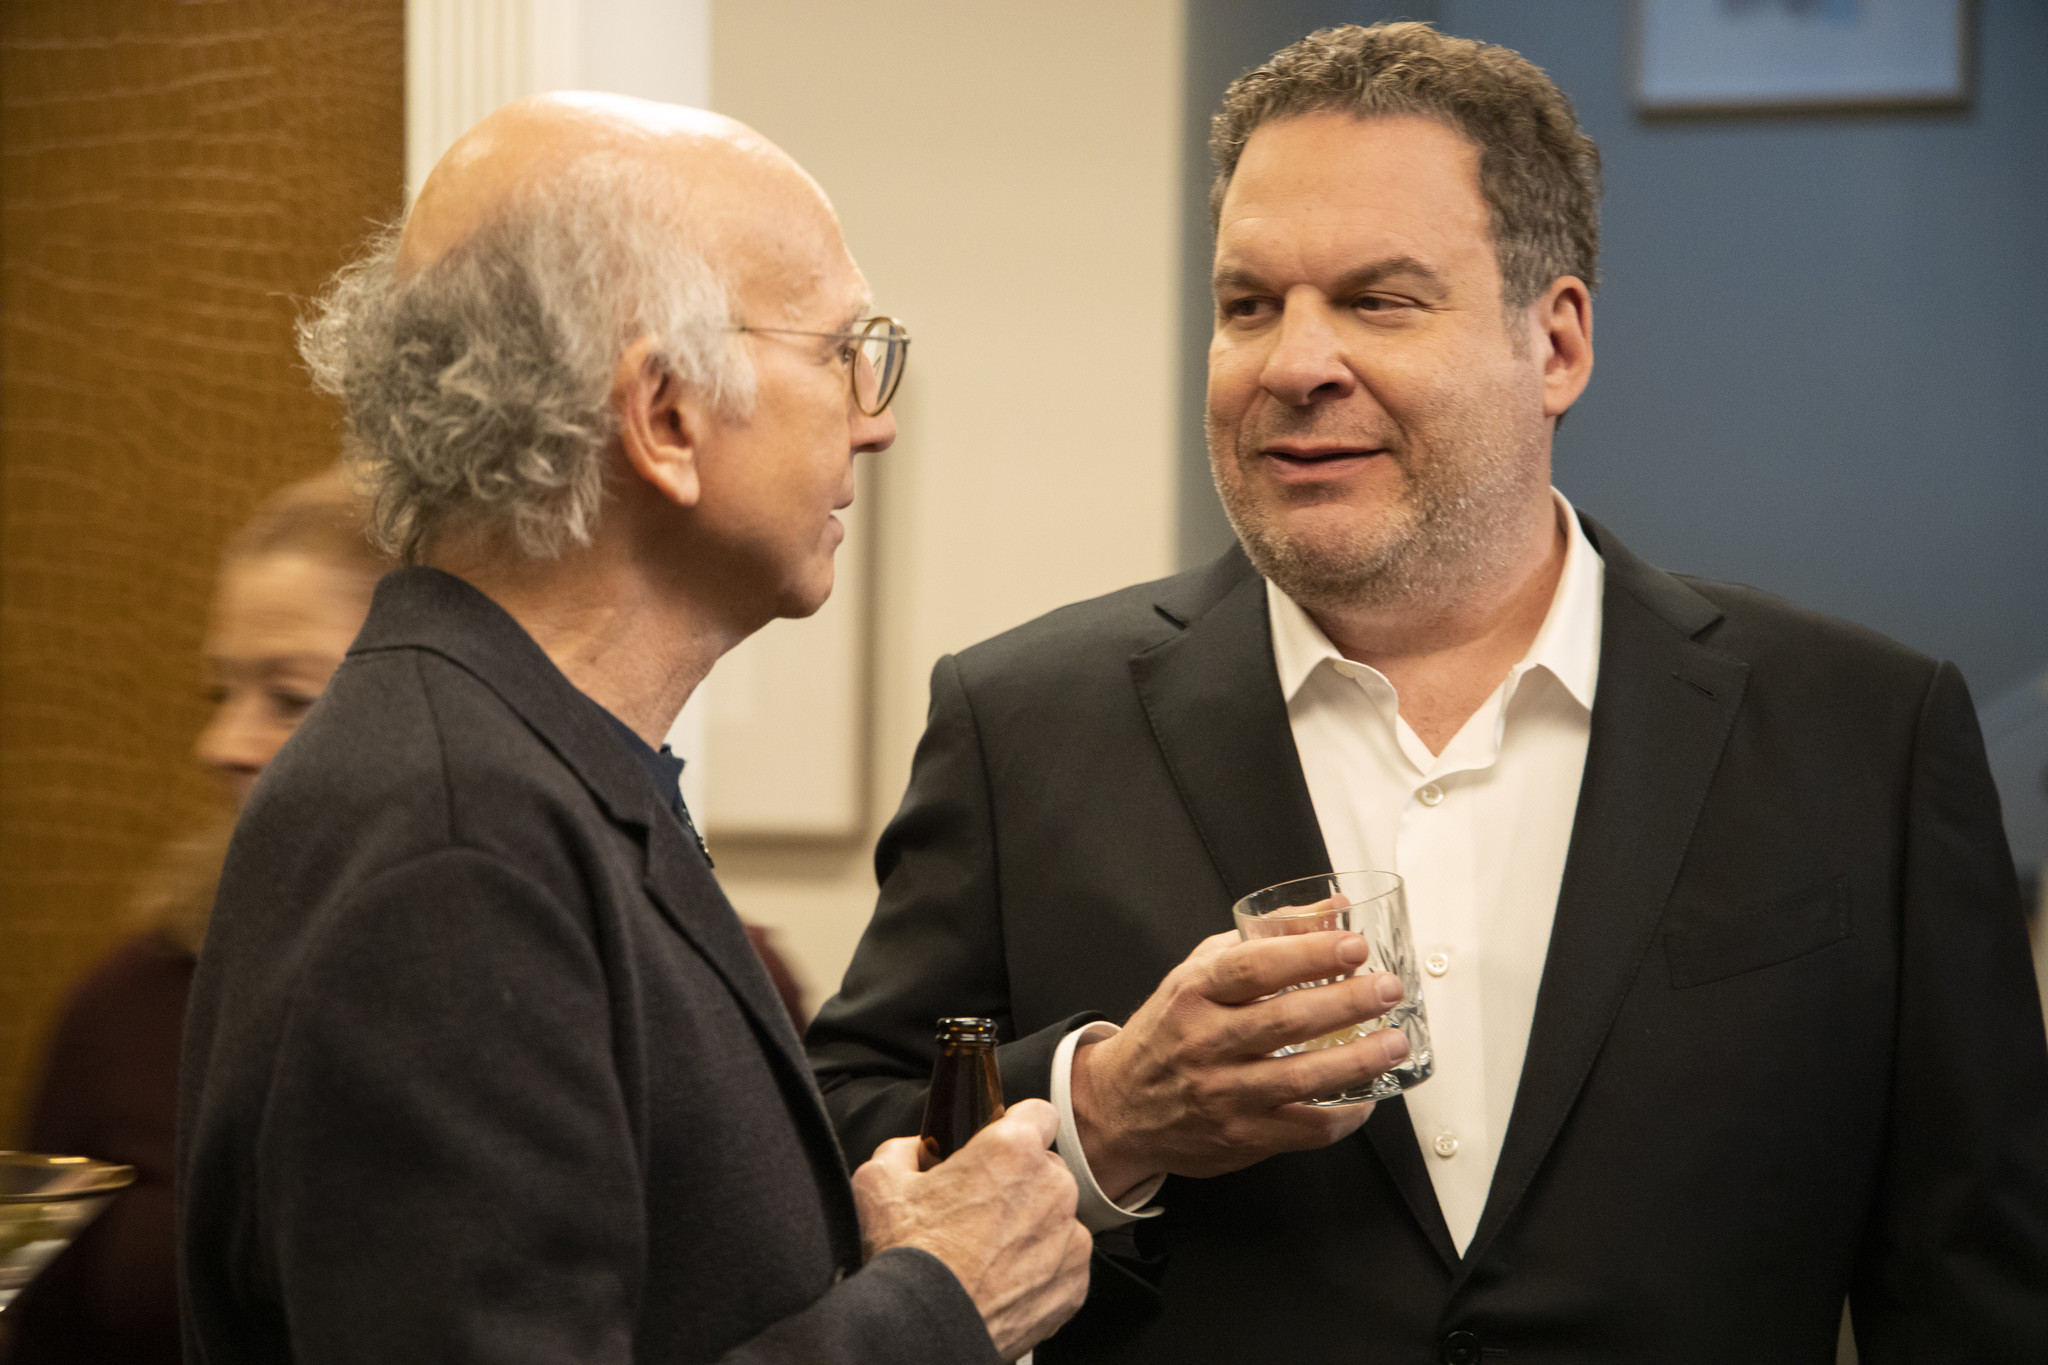 Jeff Garlin doesn't regret a single 'Curb Your Enthusiasm' scene that may have offended you ahead of Season 10